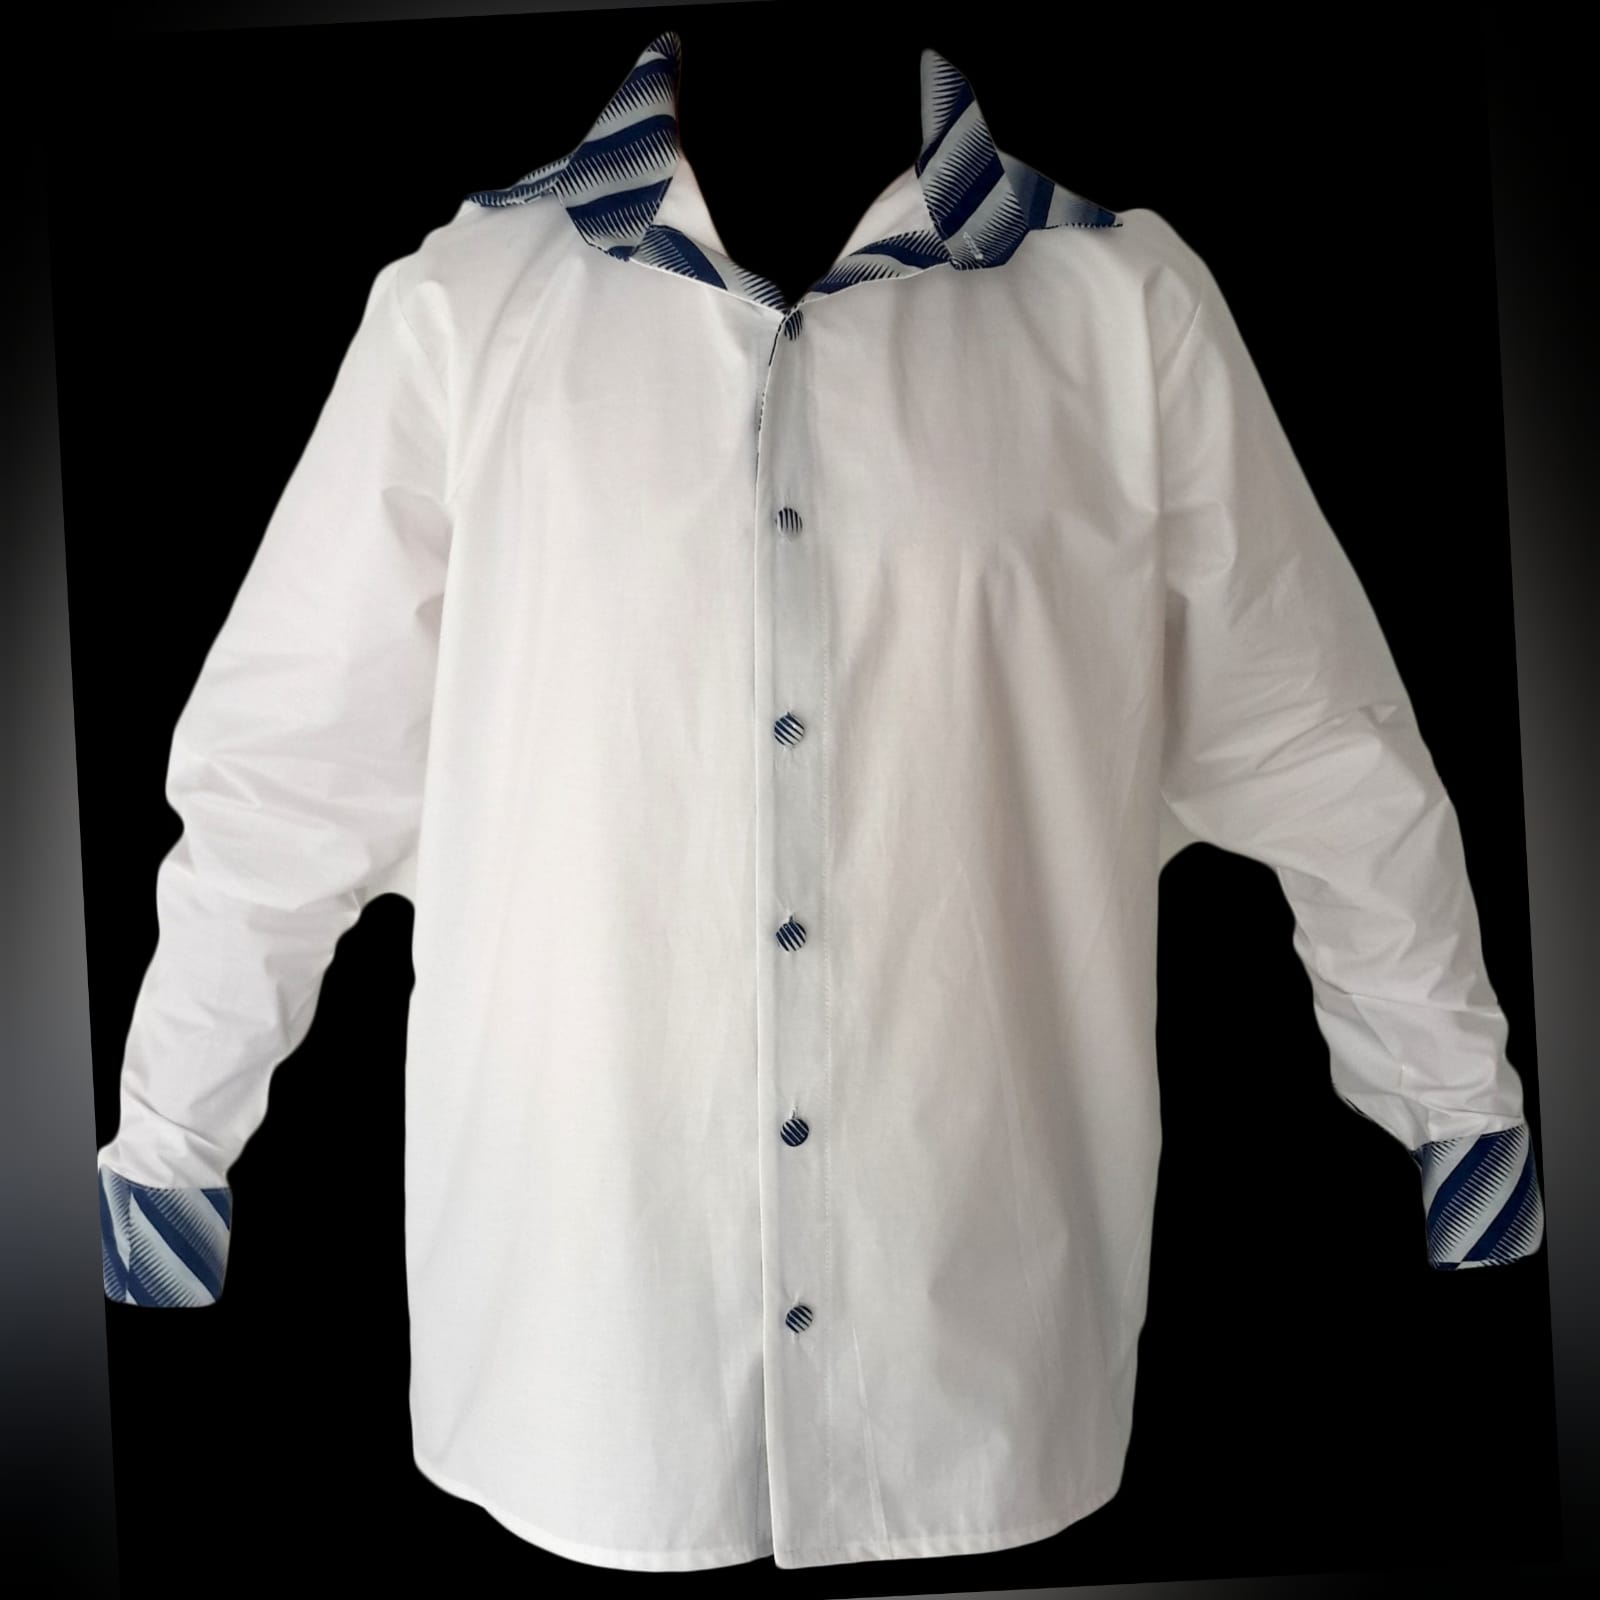 Matching couples traditional shweshwe wedding attire 7 lady: high waisted gathered traditional skirt with white 3/4 sleeve blouse. Gent: trousers and shirt with detailed collar, cuffs and elbow patches. Traditional wedding attire.